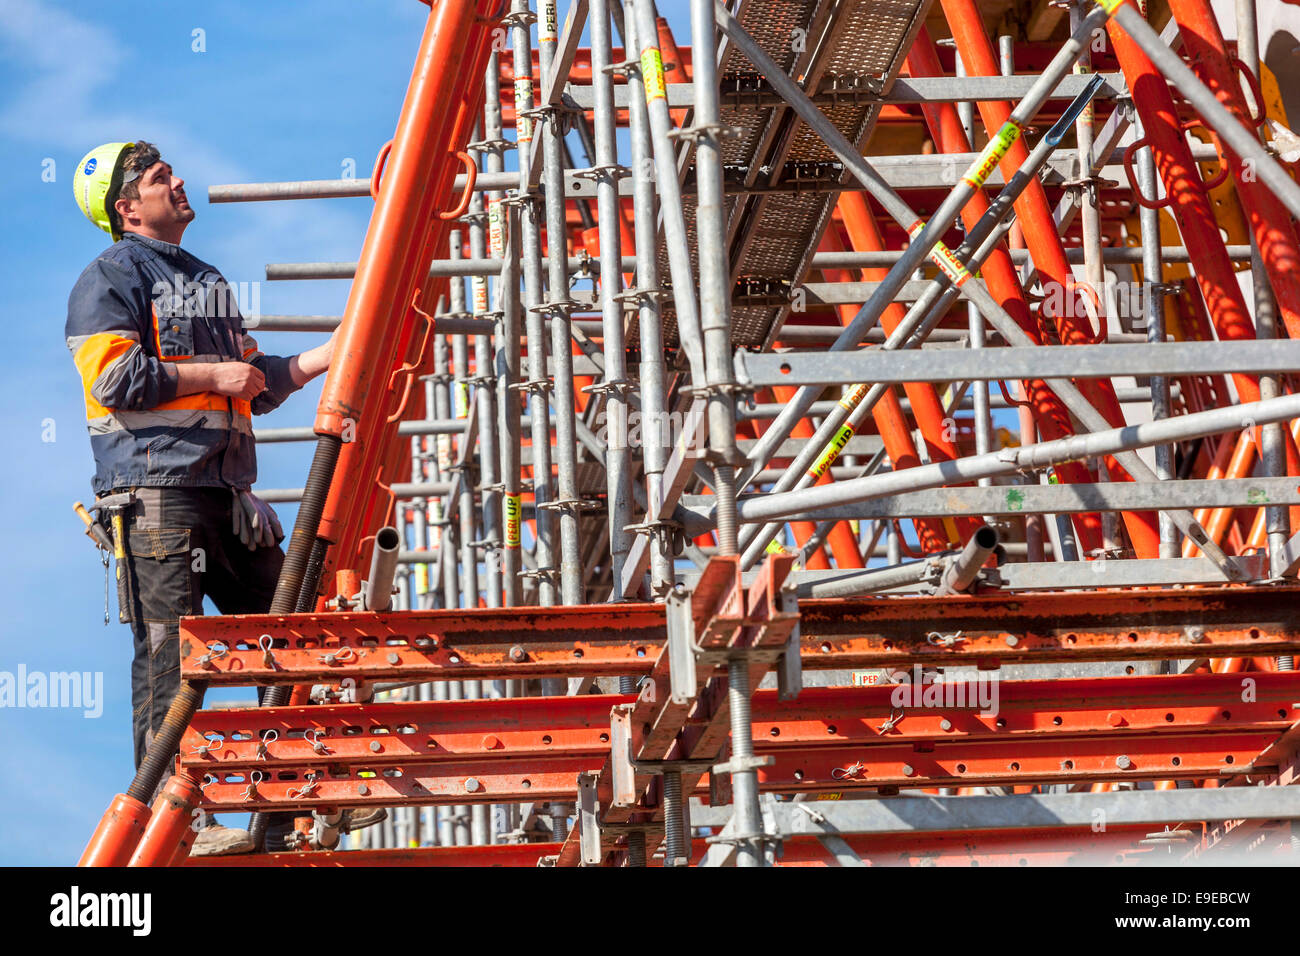 Scaffolding and construction of building - Stock Image